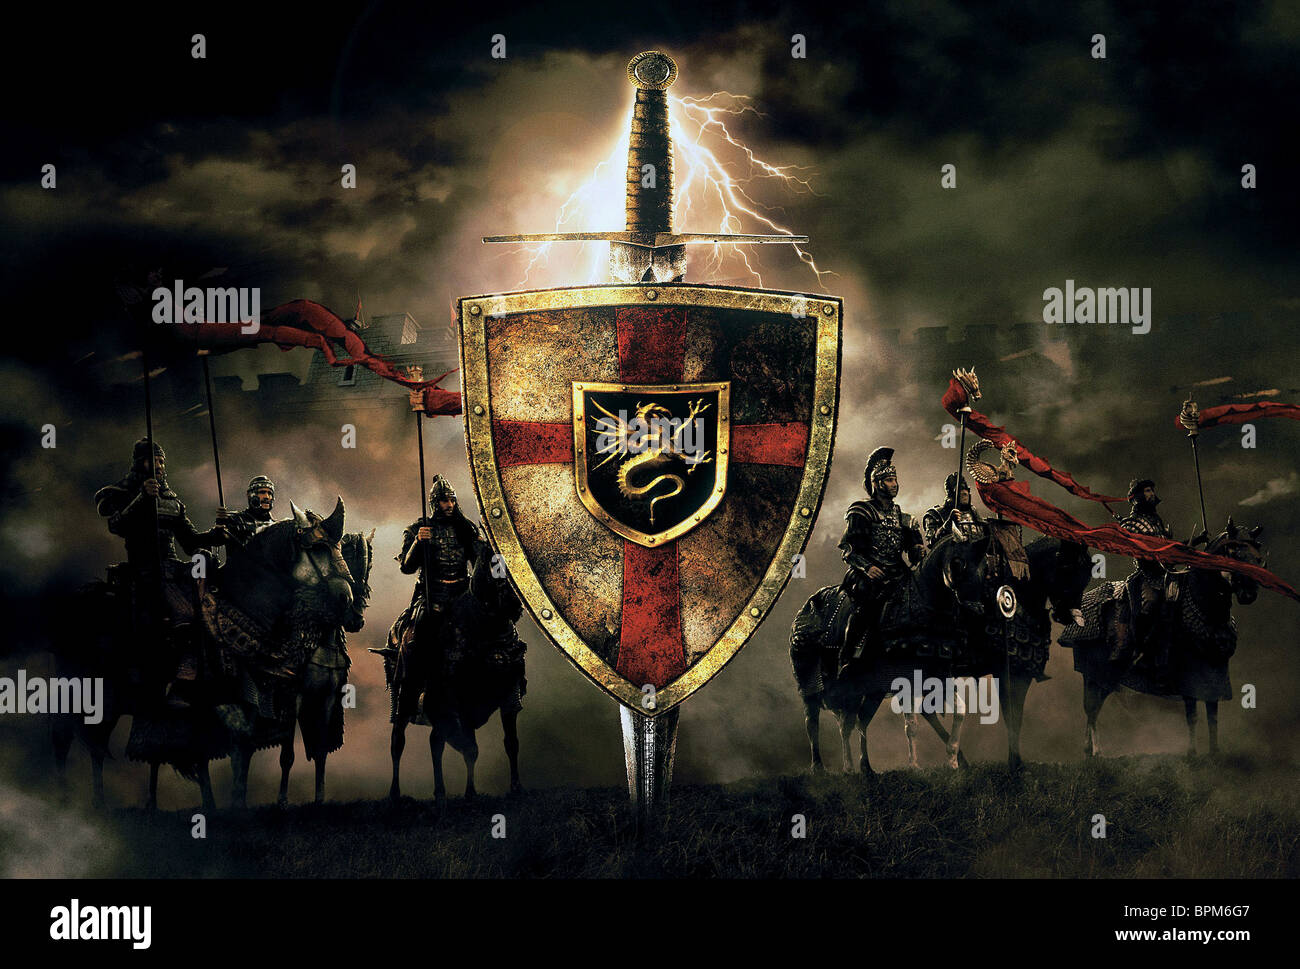 Knights of the round table stock photos knights of the - King arthur and the knights of the round table ...